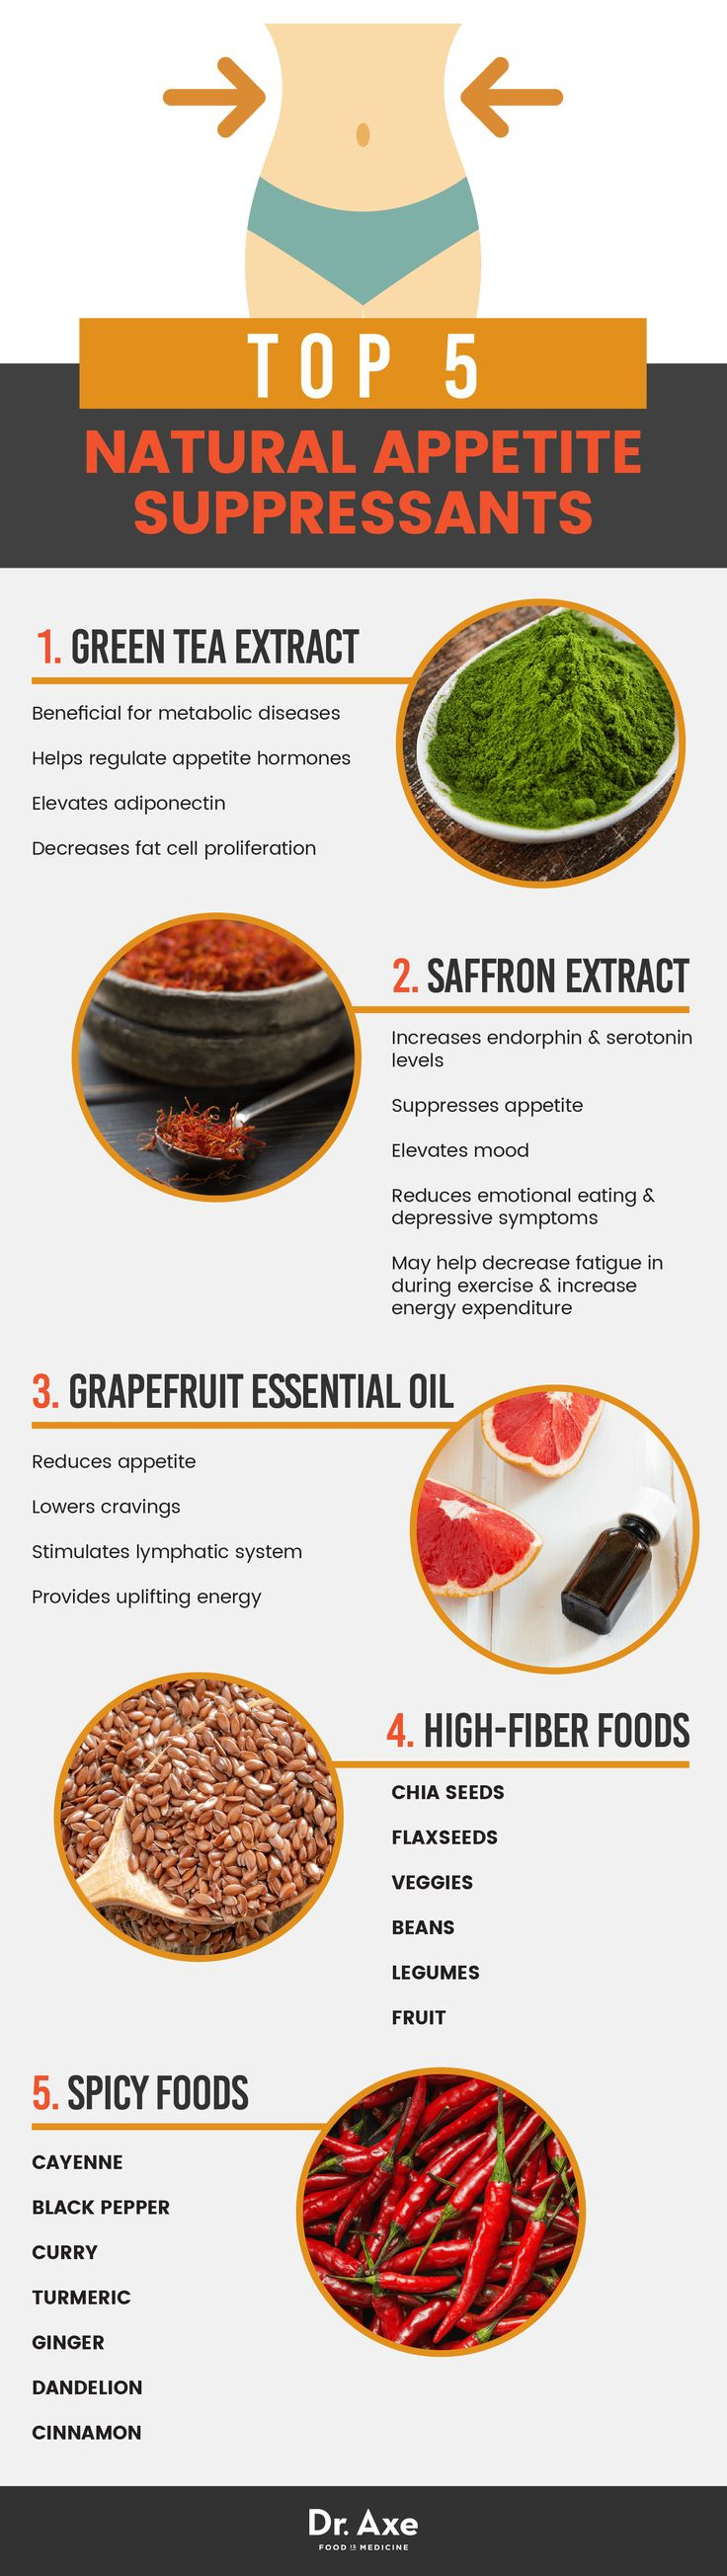 Top five natural appetite suppressants - Dr. Axe http://www.draxe.com #health #holistic #natural